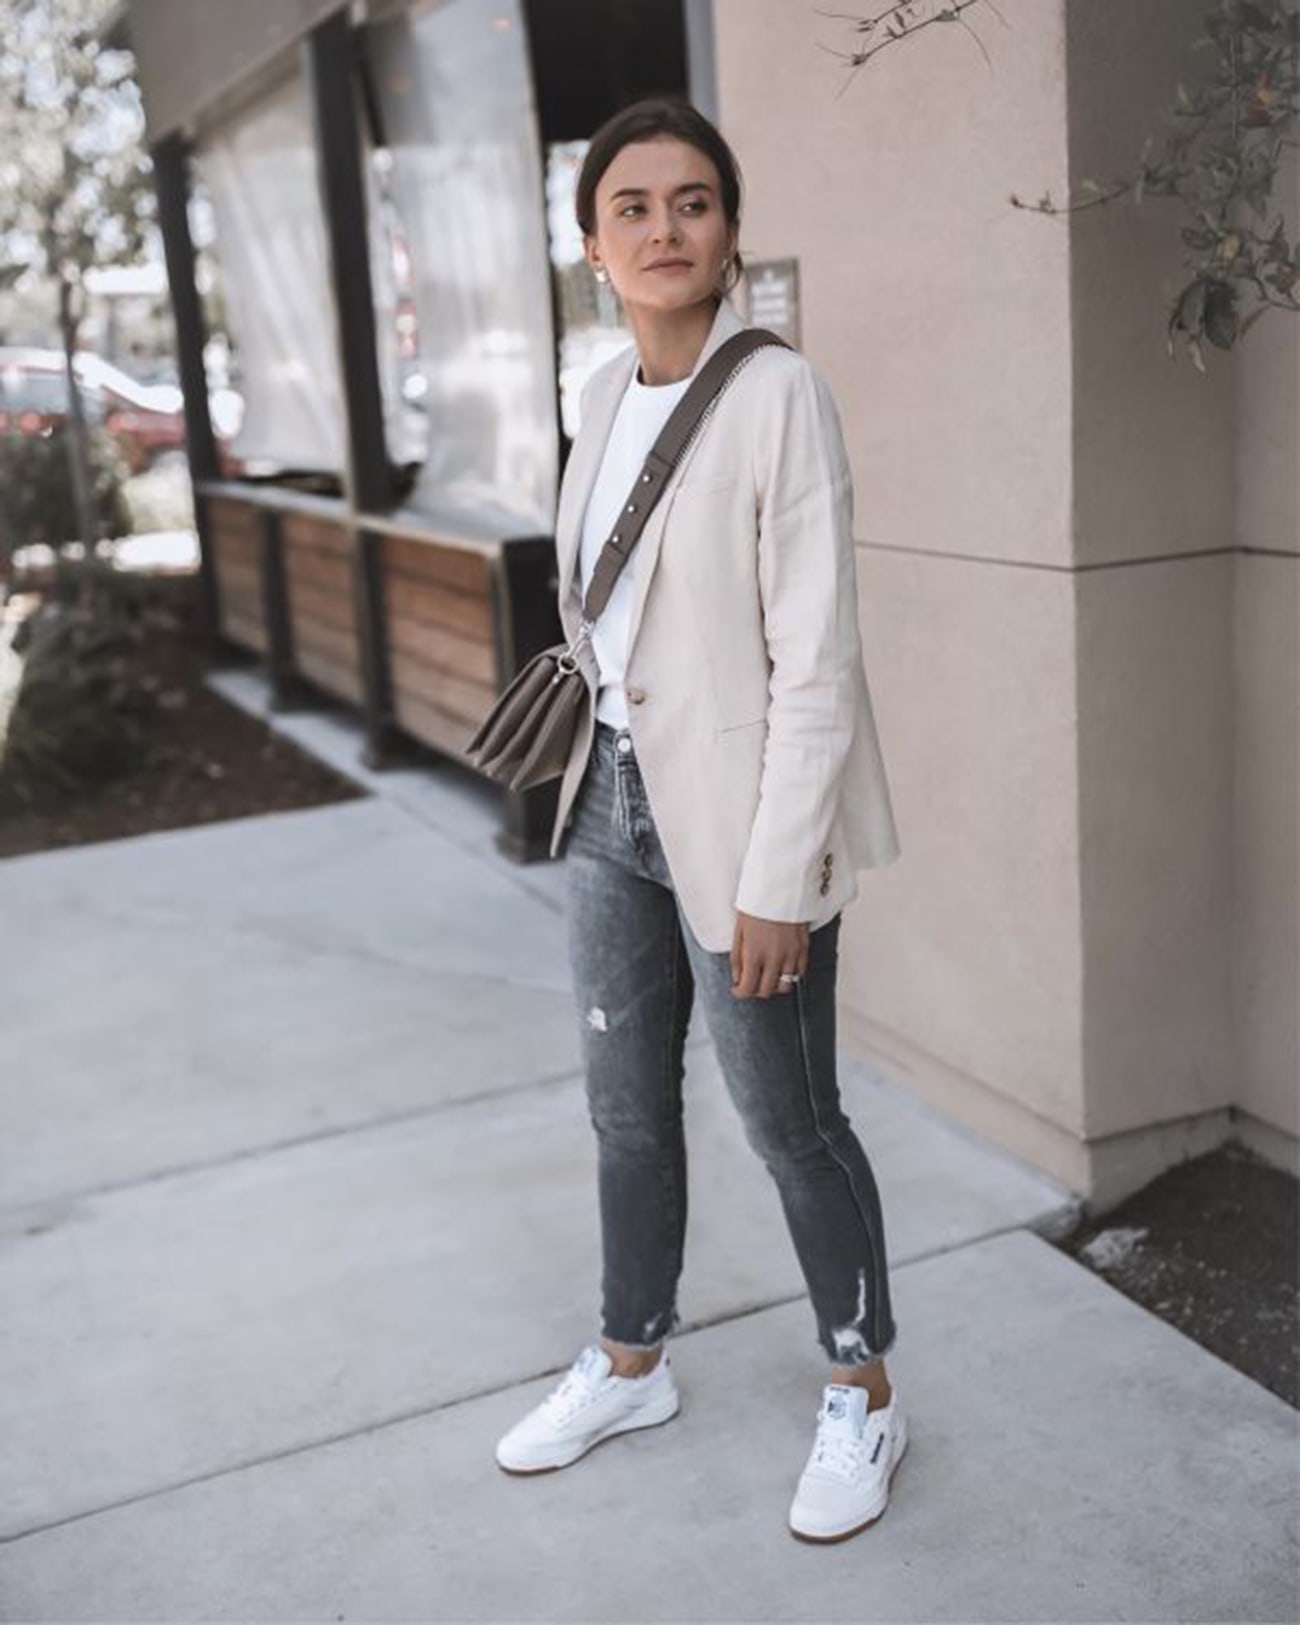 How to Style Your White Sneakers for Fall